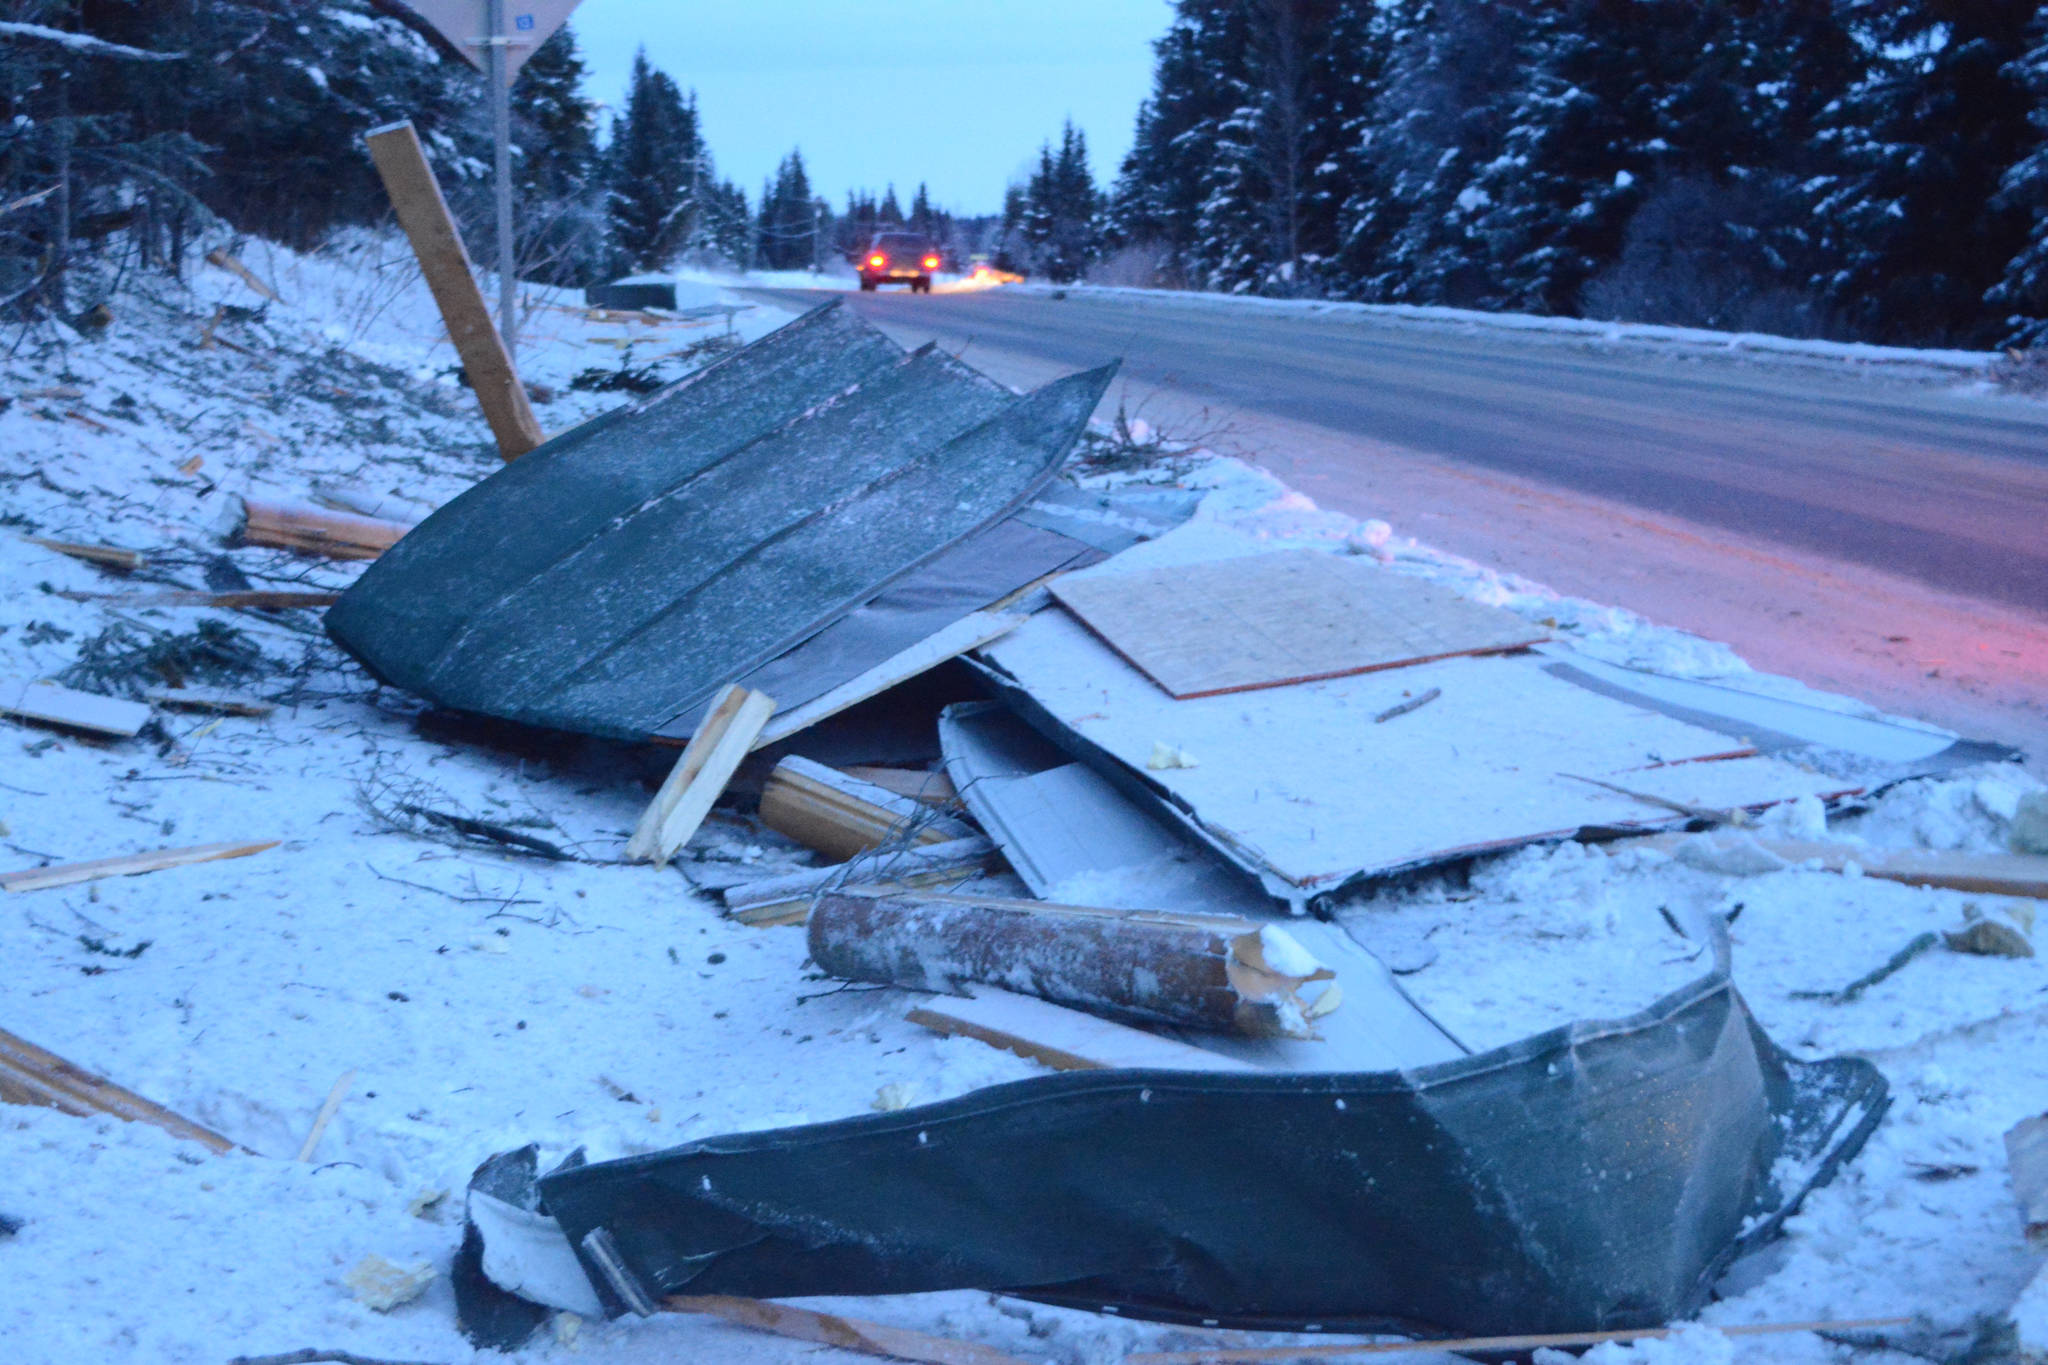 Debris from an exploded house is piled by the road near Mile 166 Sterling Highway on Friday, Dec. 28, 2018, near Homer, Alaska. The debris field from the explosion spread at least 200 feet in all directions. (Photo by Michael Armstrong/Homer News).